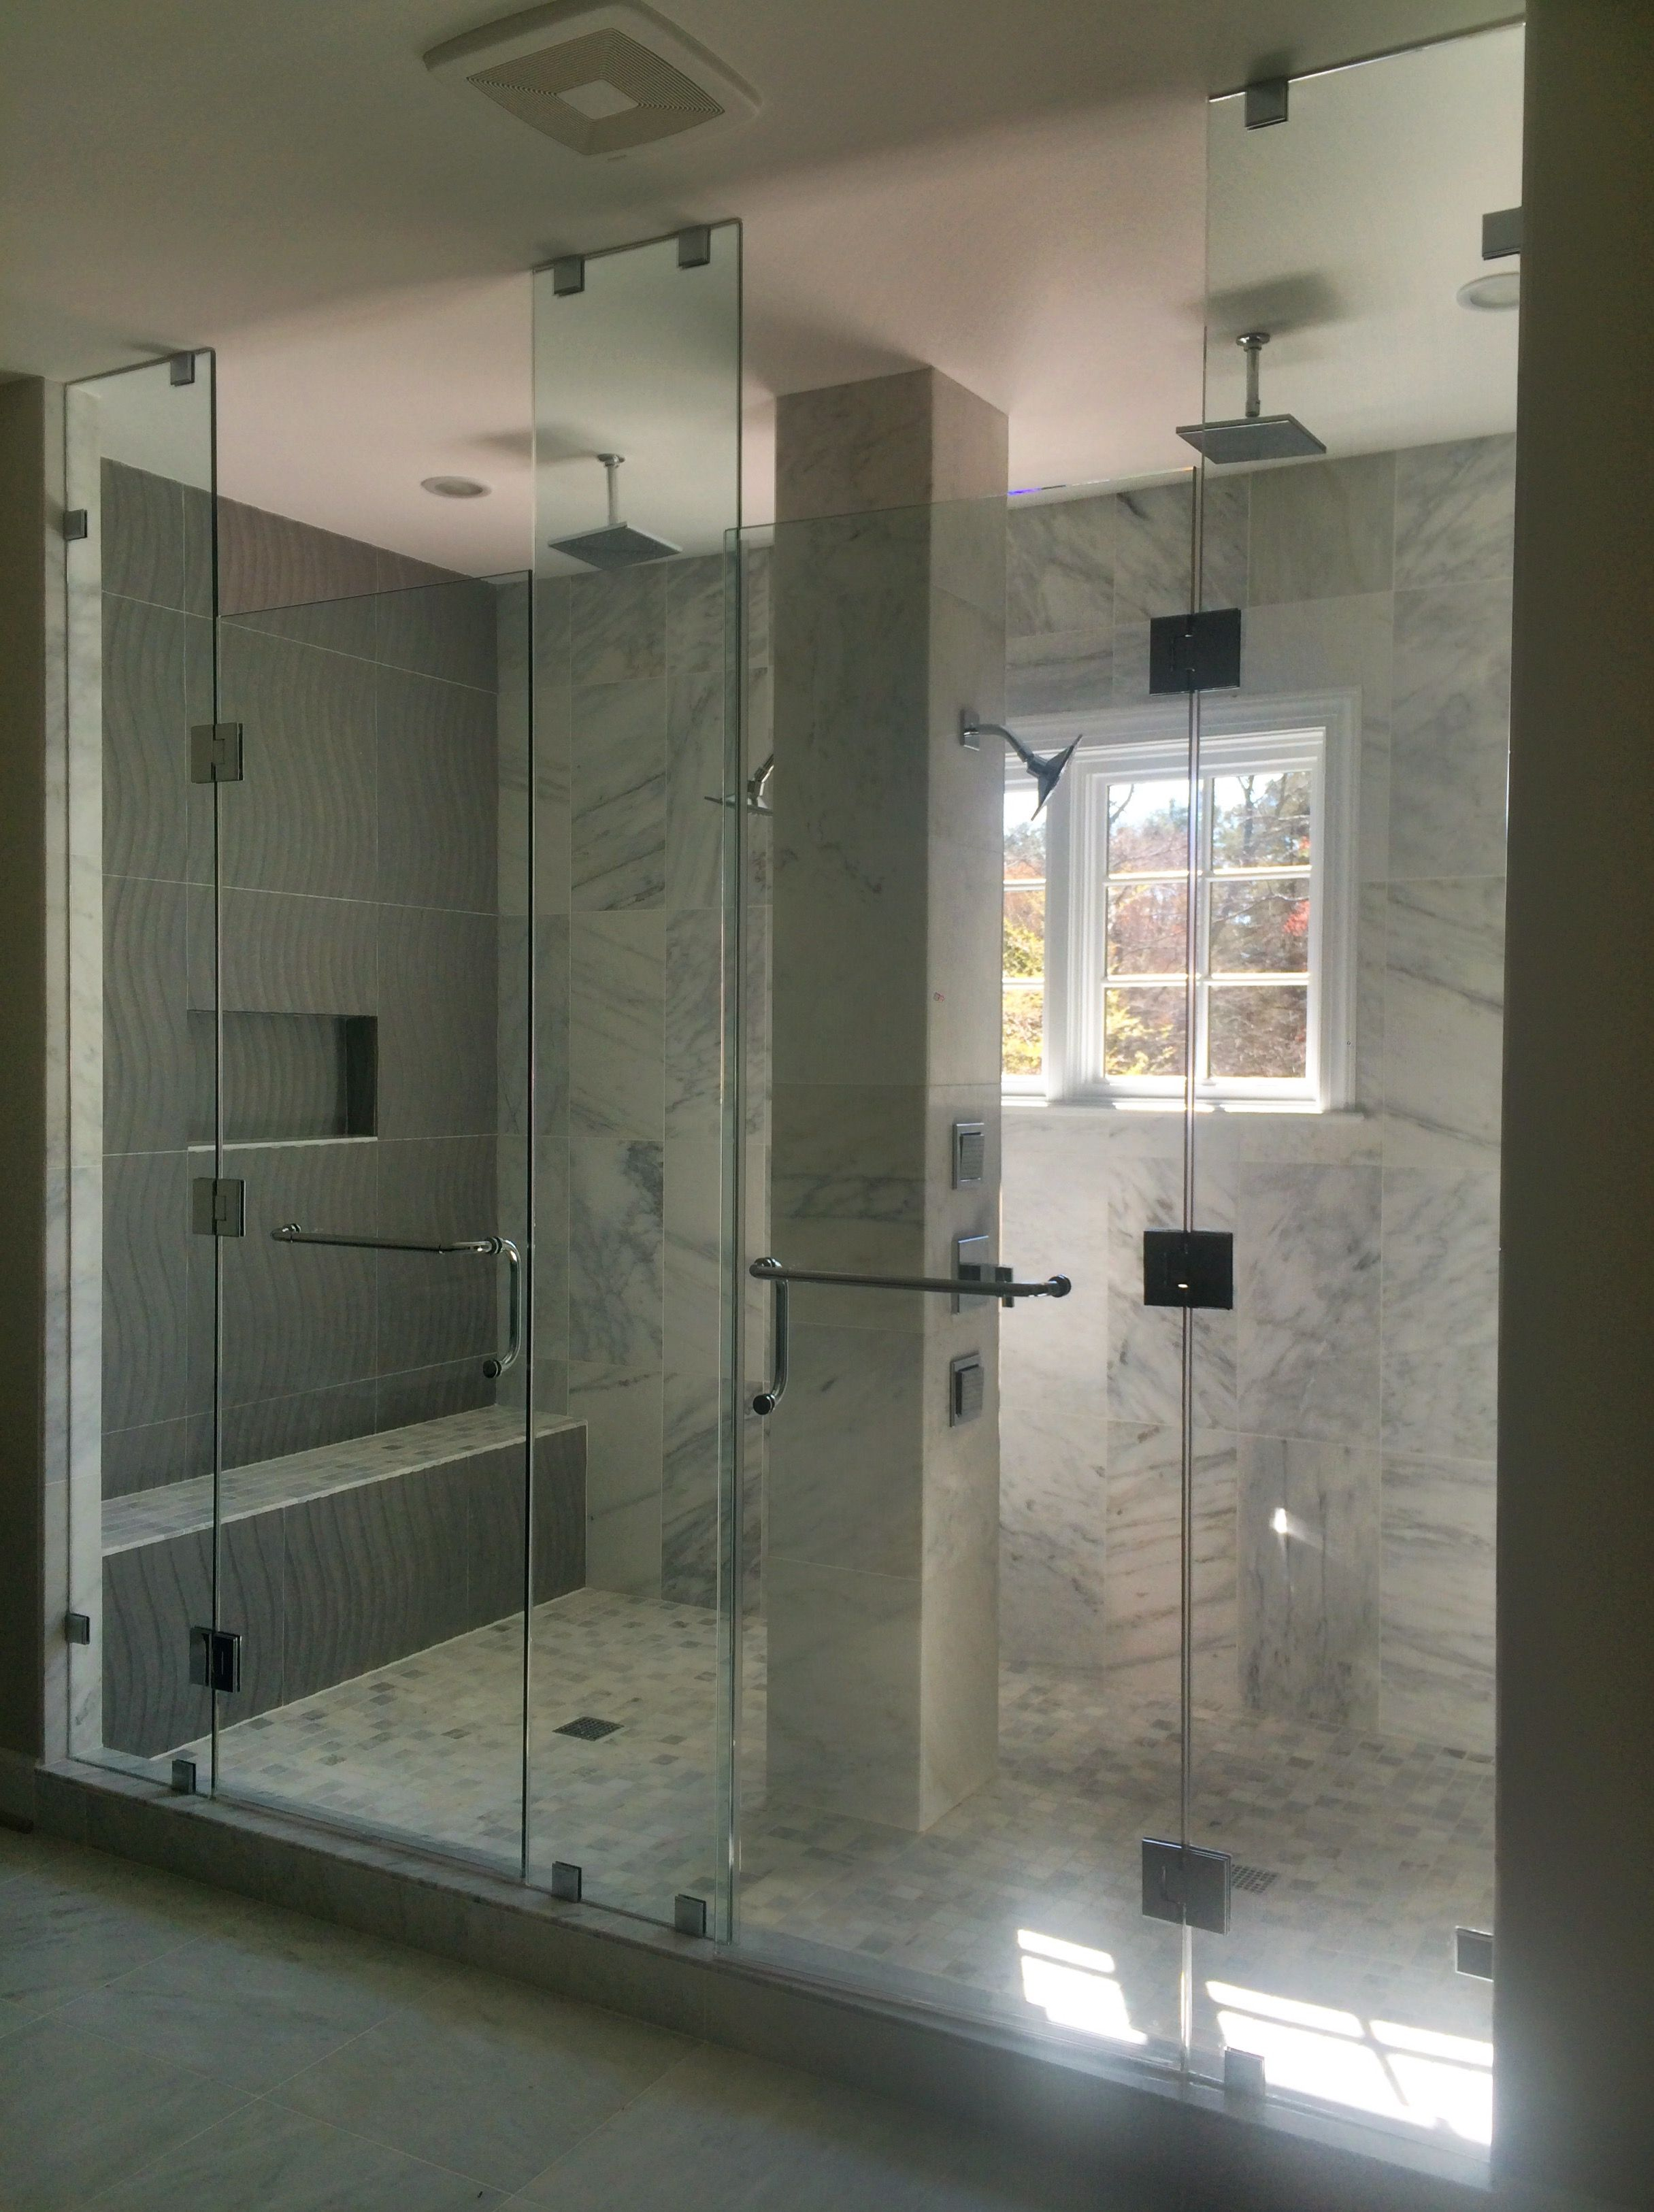 Superieur Large Custom Two Person Shower. Gulick Group Luxury Home Builder And Design  In Northern VA.